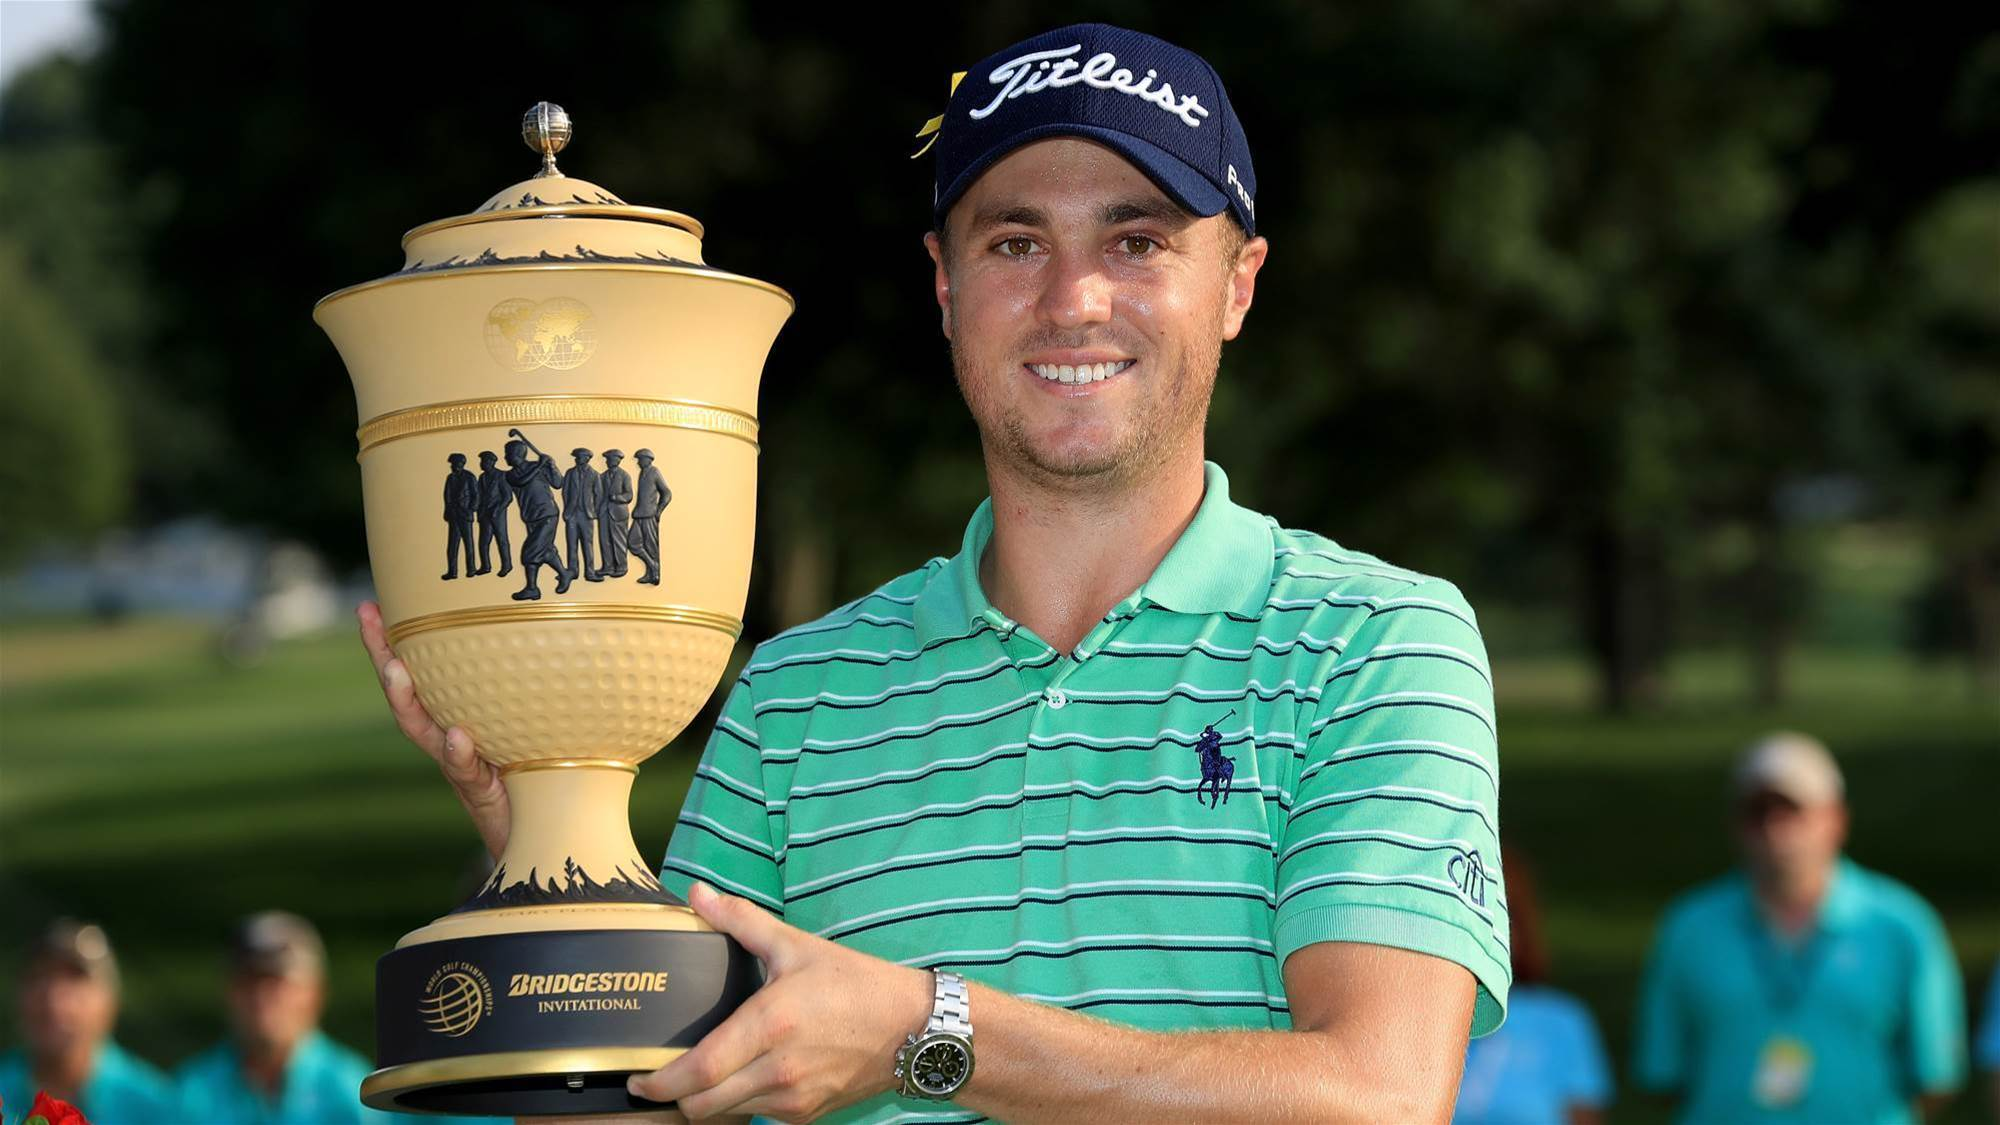 Thomas cruises to WGC-Bridgestone victory